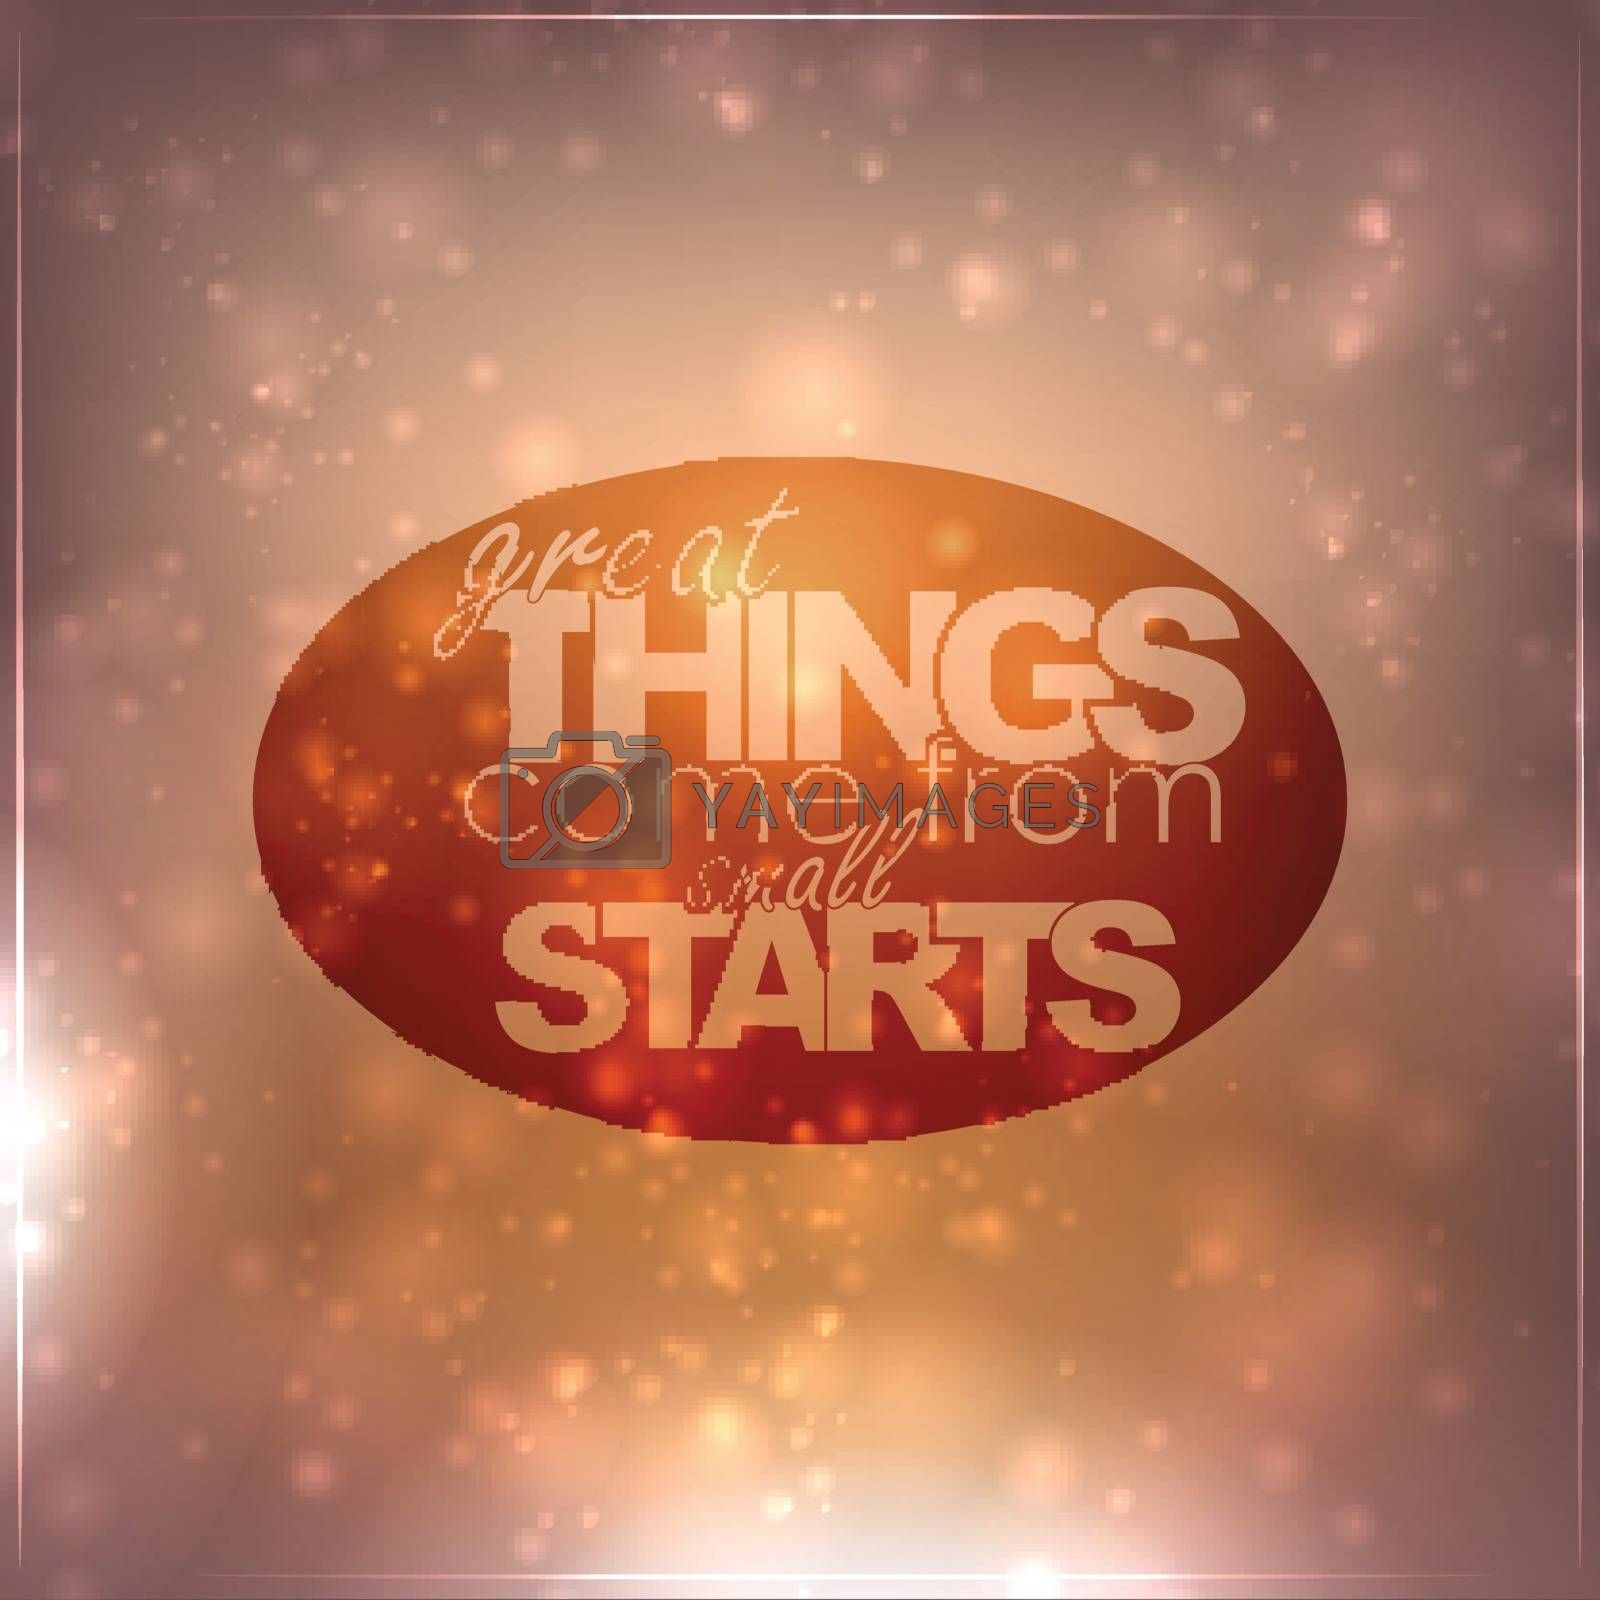 Royalty free image of Great Things come from small starts by maxmitzu